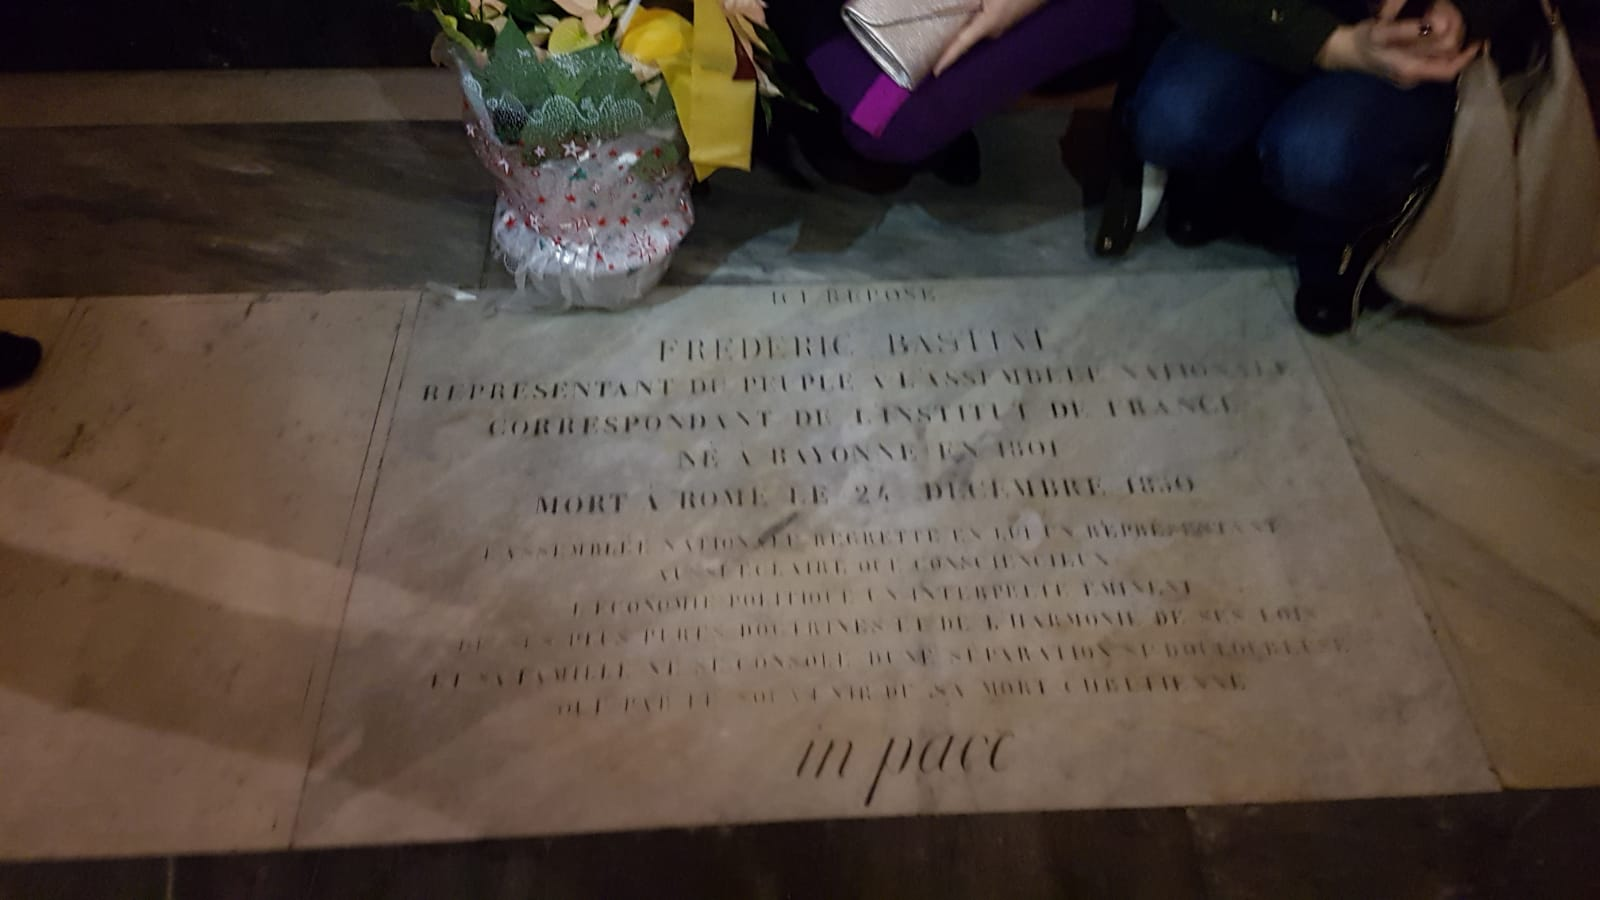 Liberland Diplomatic Event: Honoring Frédéric Bastiat, New Italy Office